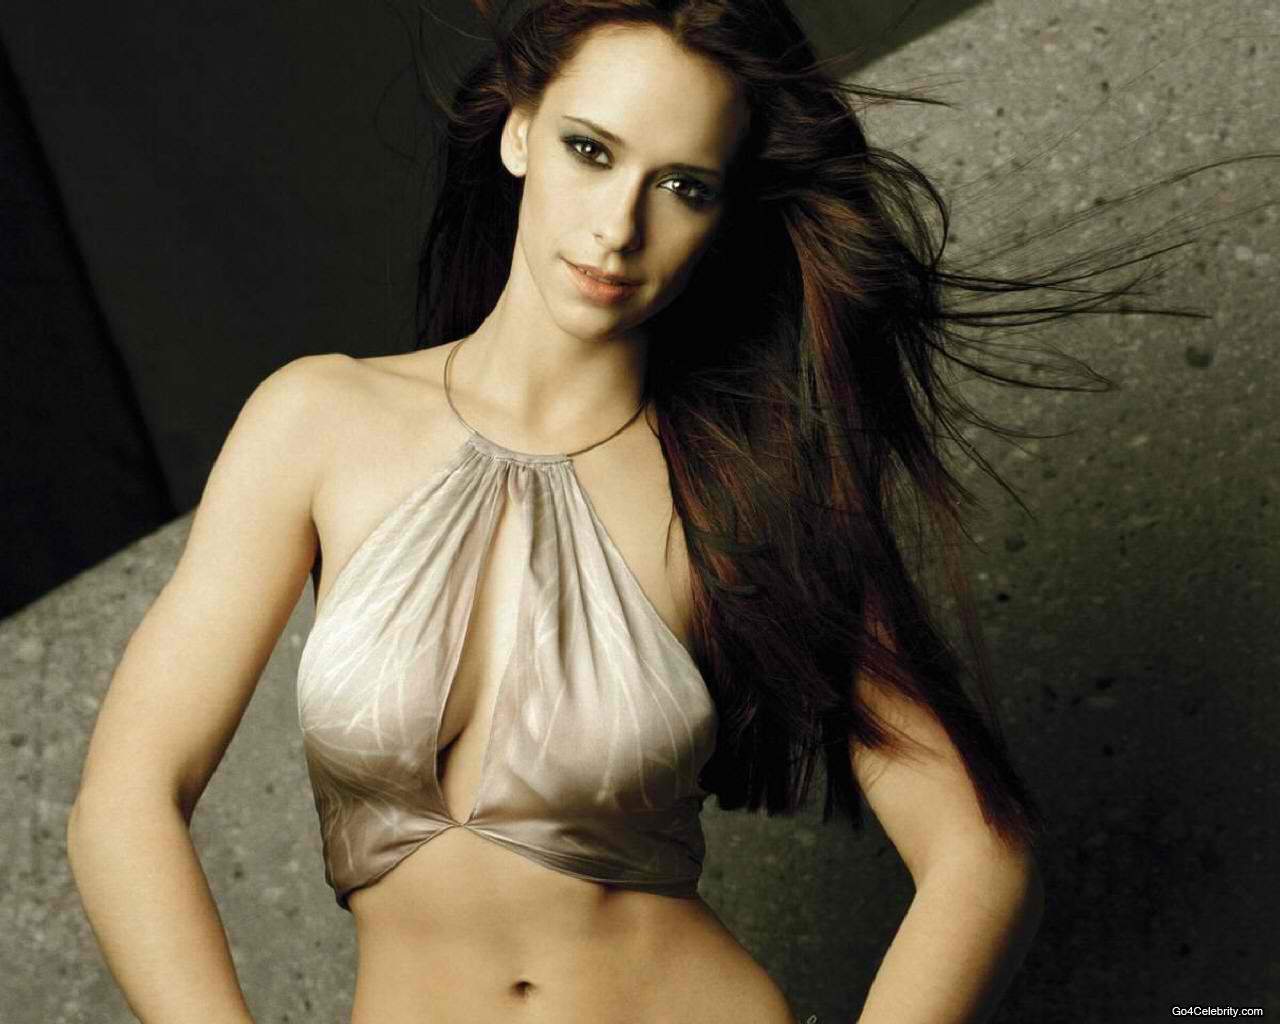 Wallpaper Of Hot Love : Jennifer Love Hewitt Wallpaper, Bikini Picture, Sexy Lingerie Photo and Hot Images Download